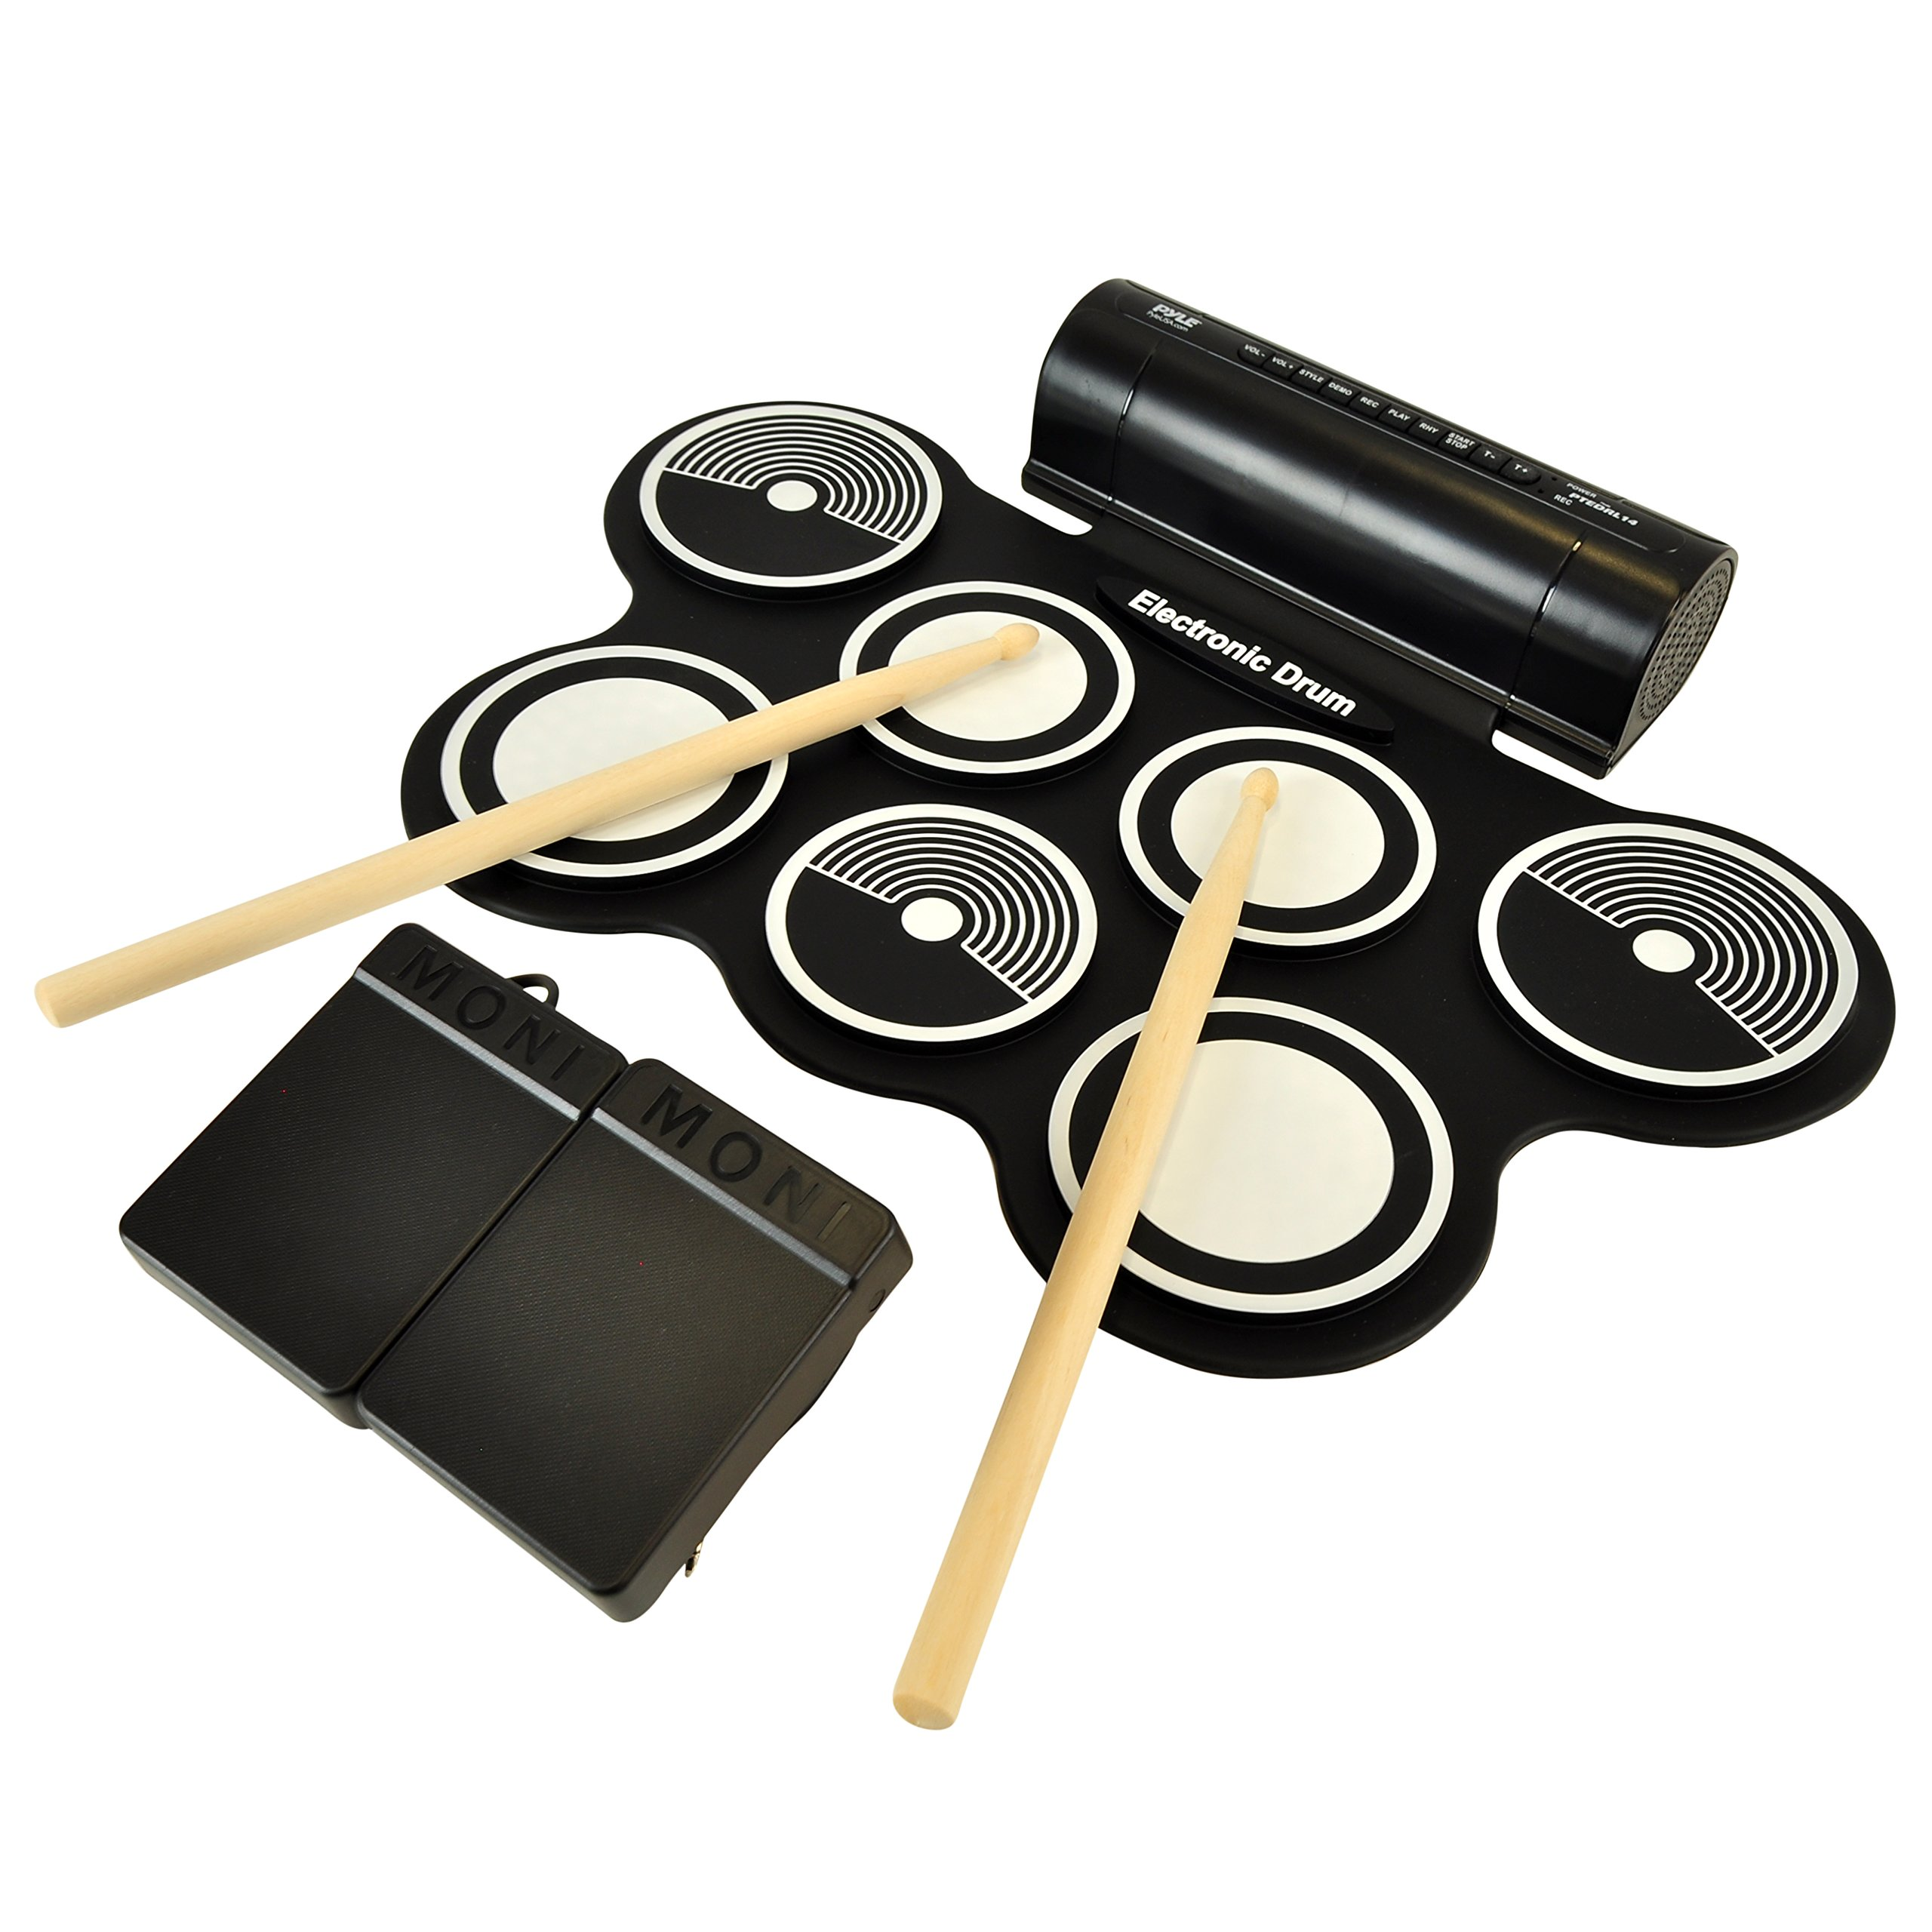 Pyle Electronic Roll Up MIDI Drum Kit W/ 9 Electric Drum Pads, Foot Pedals, Drumsticks, Power Supply | Quick Setup | Tabletop Roll Up Drum Kit | Pre-Loaded W/Drum Electric Kits & Songs by Pyle